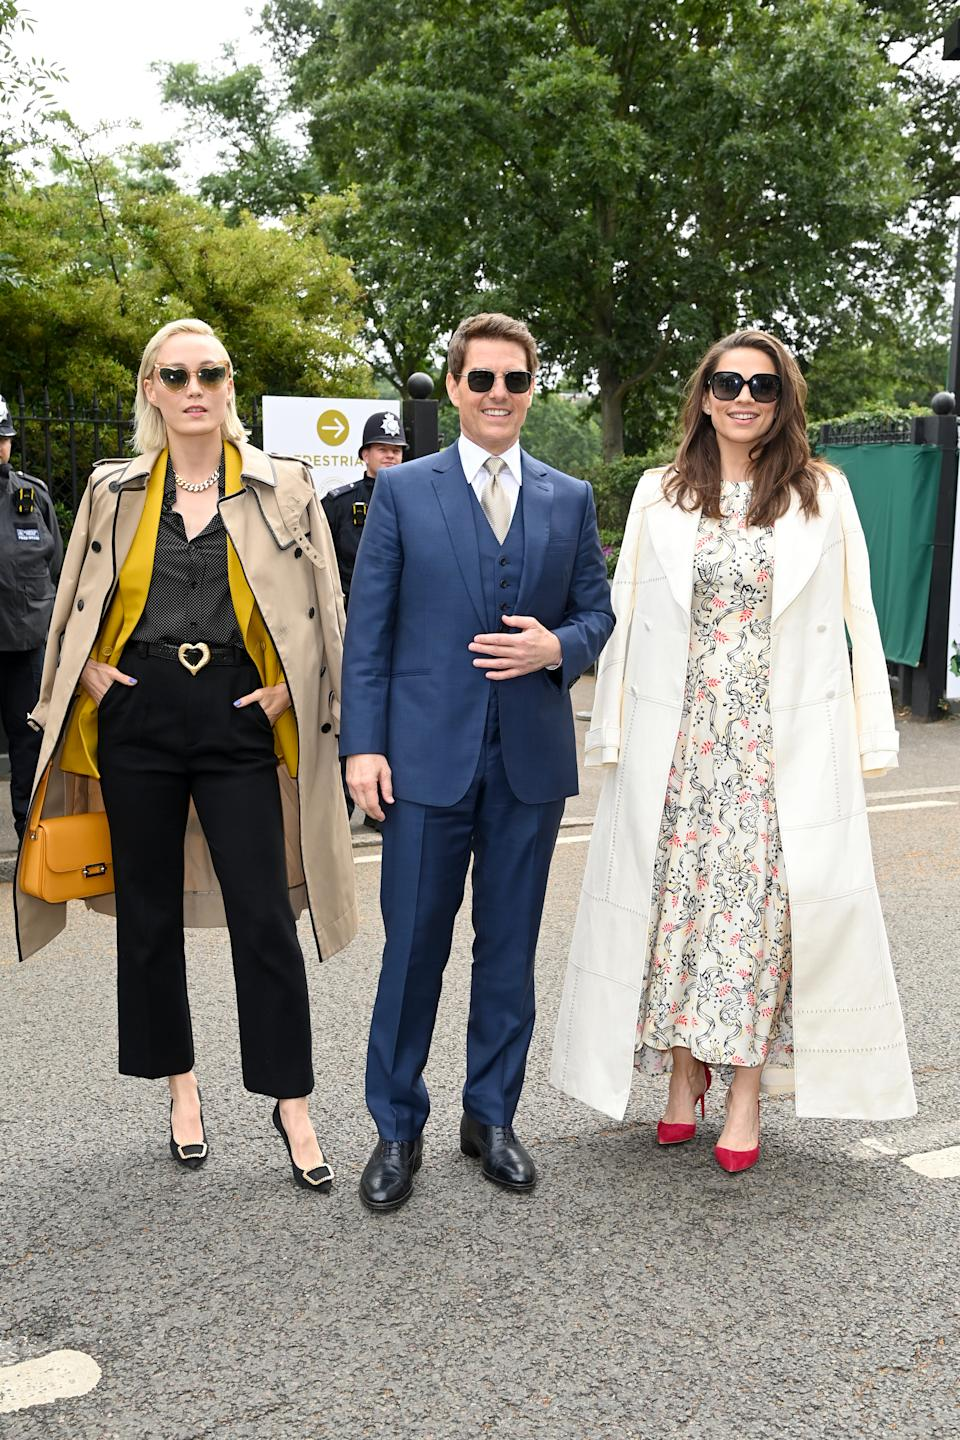 tom cruise Mission Impossible co-stars Hayley Atwell and Pom Klementieff at wimbledon